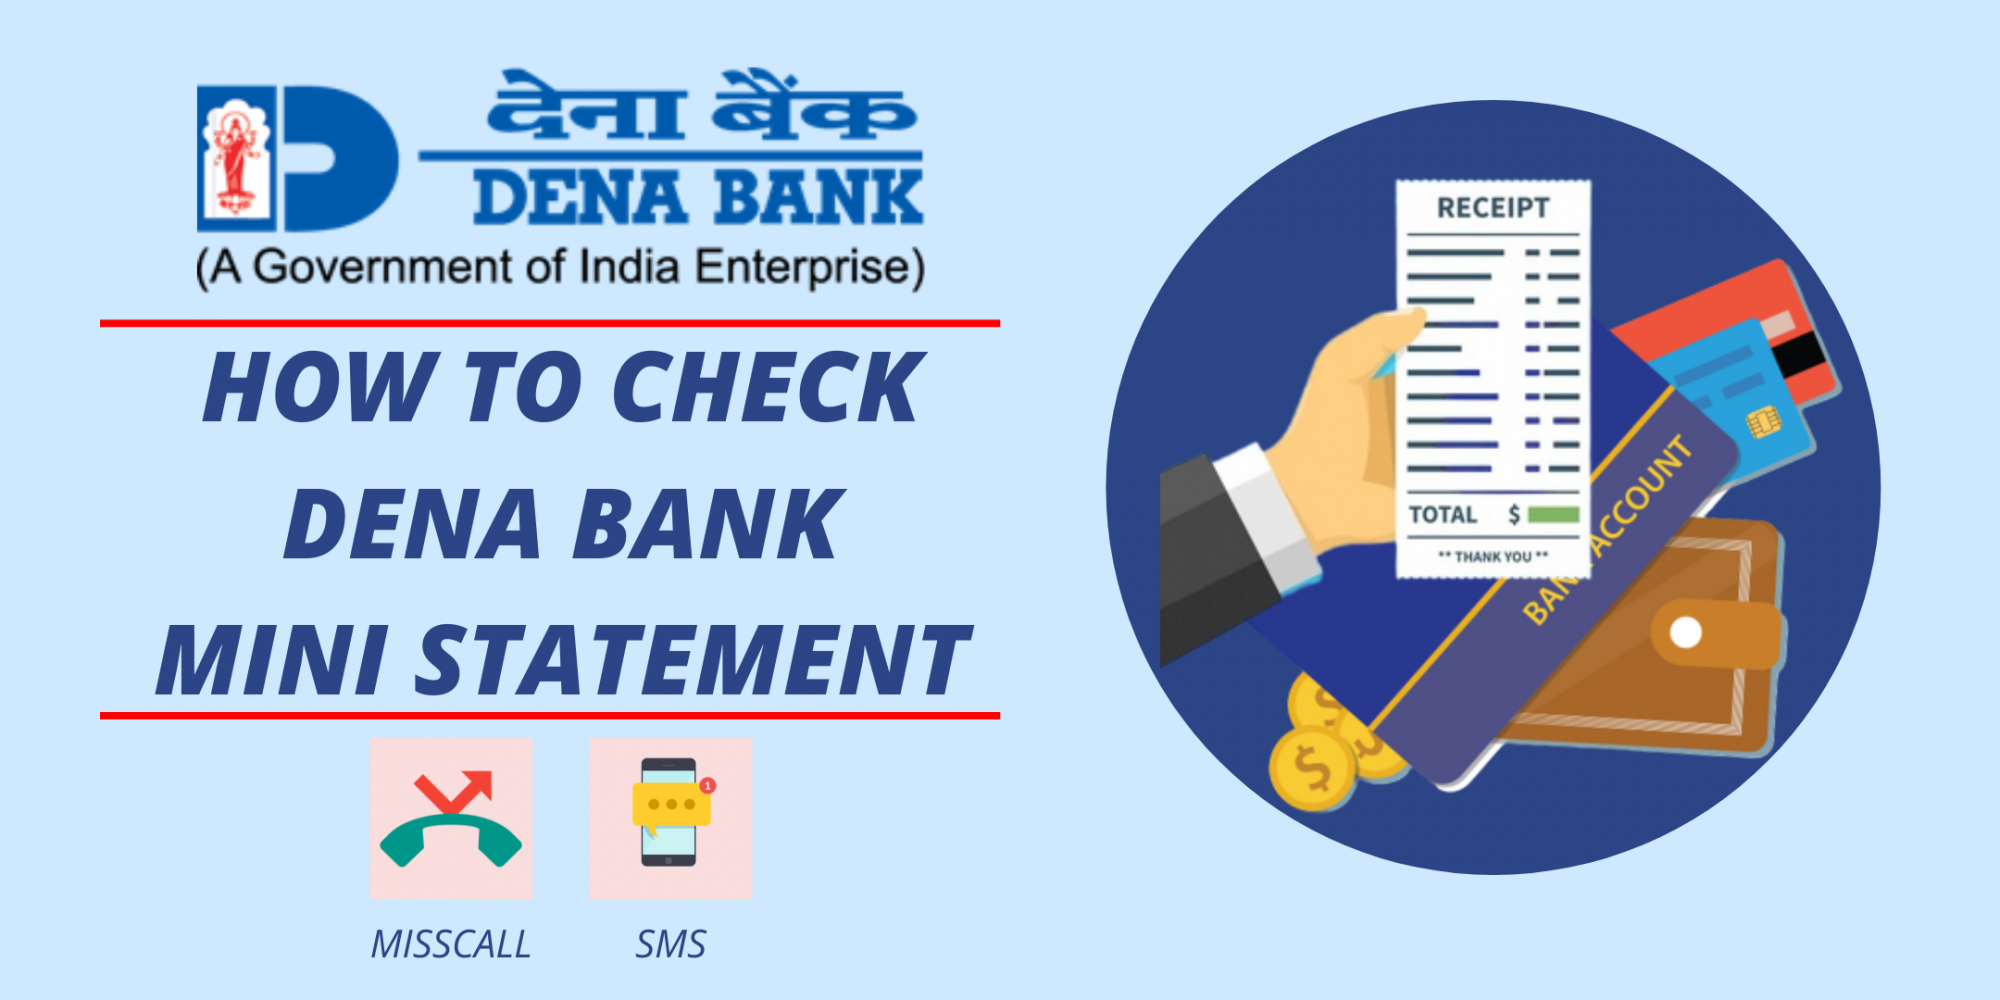 Dena Bank Mini Statement